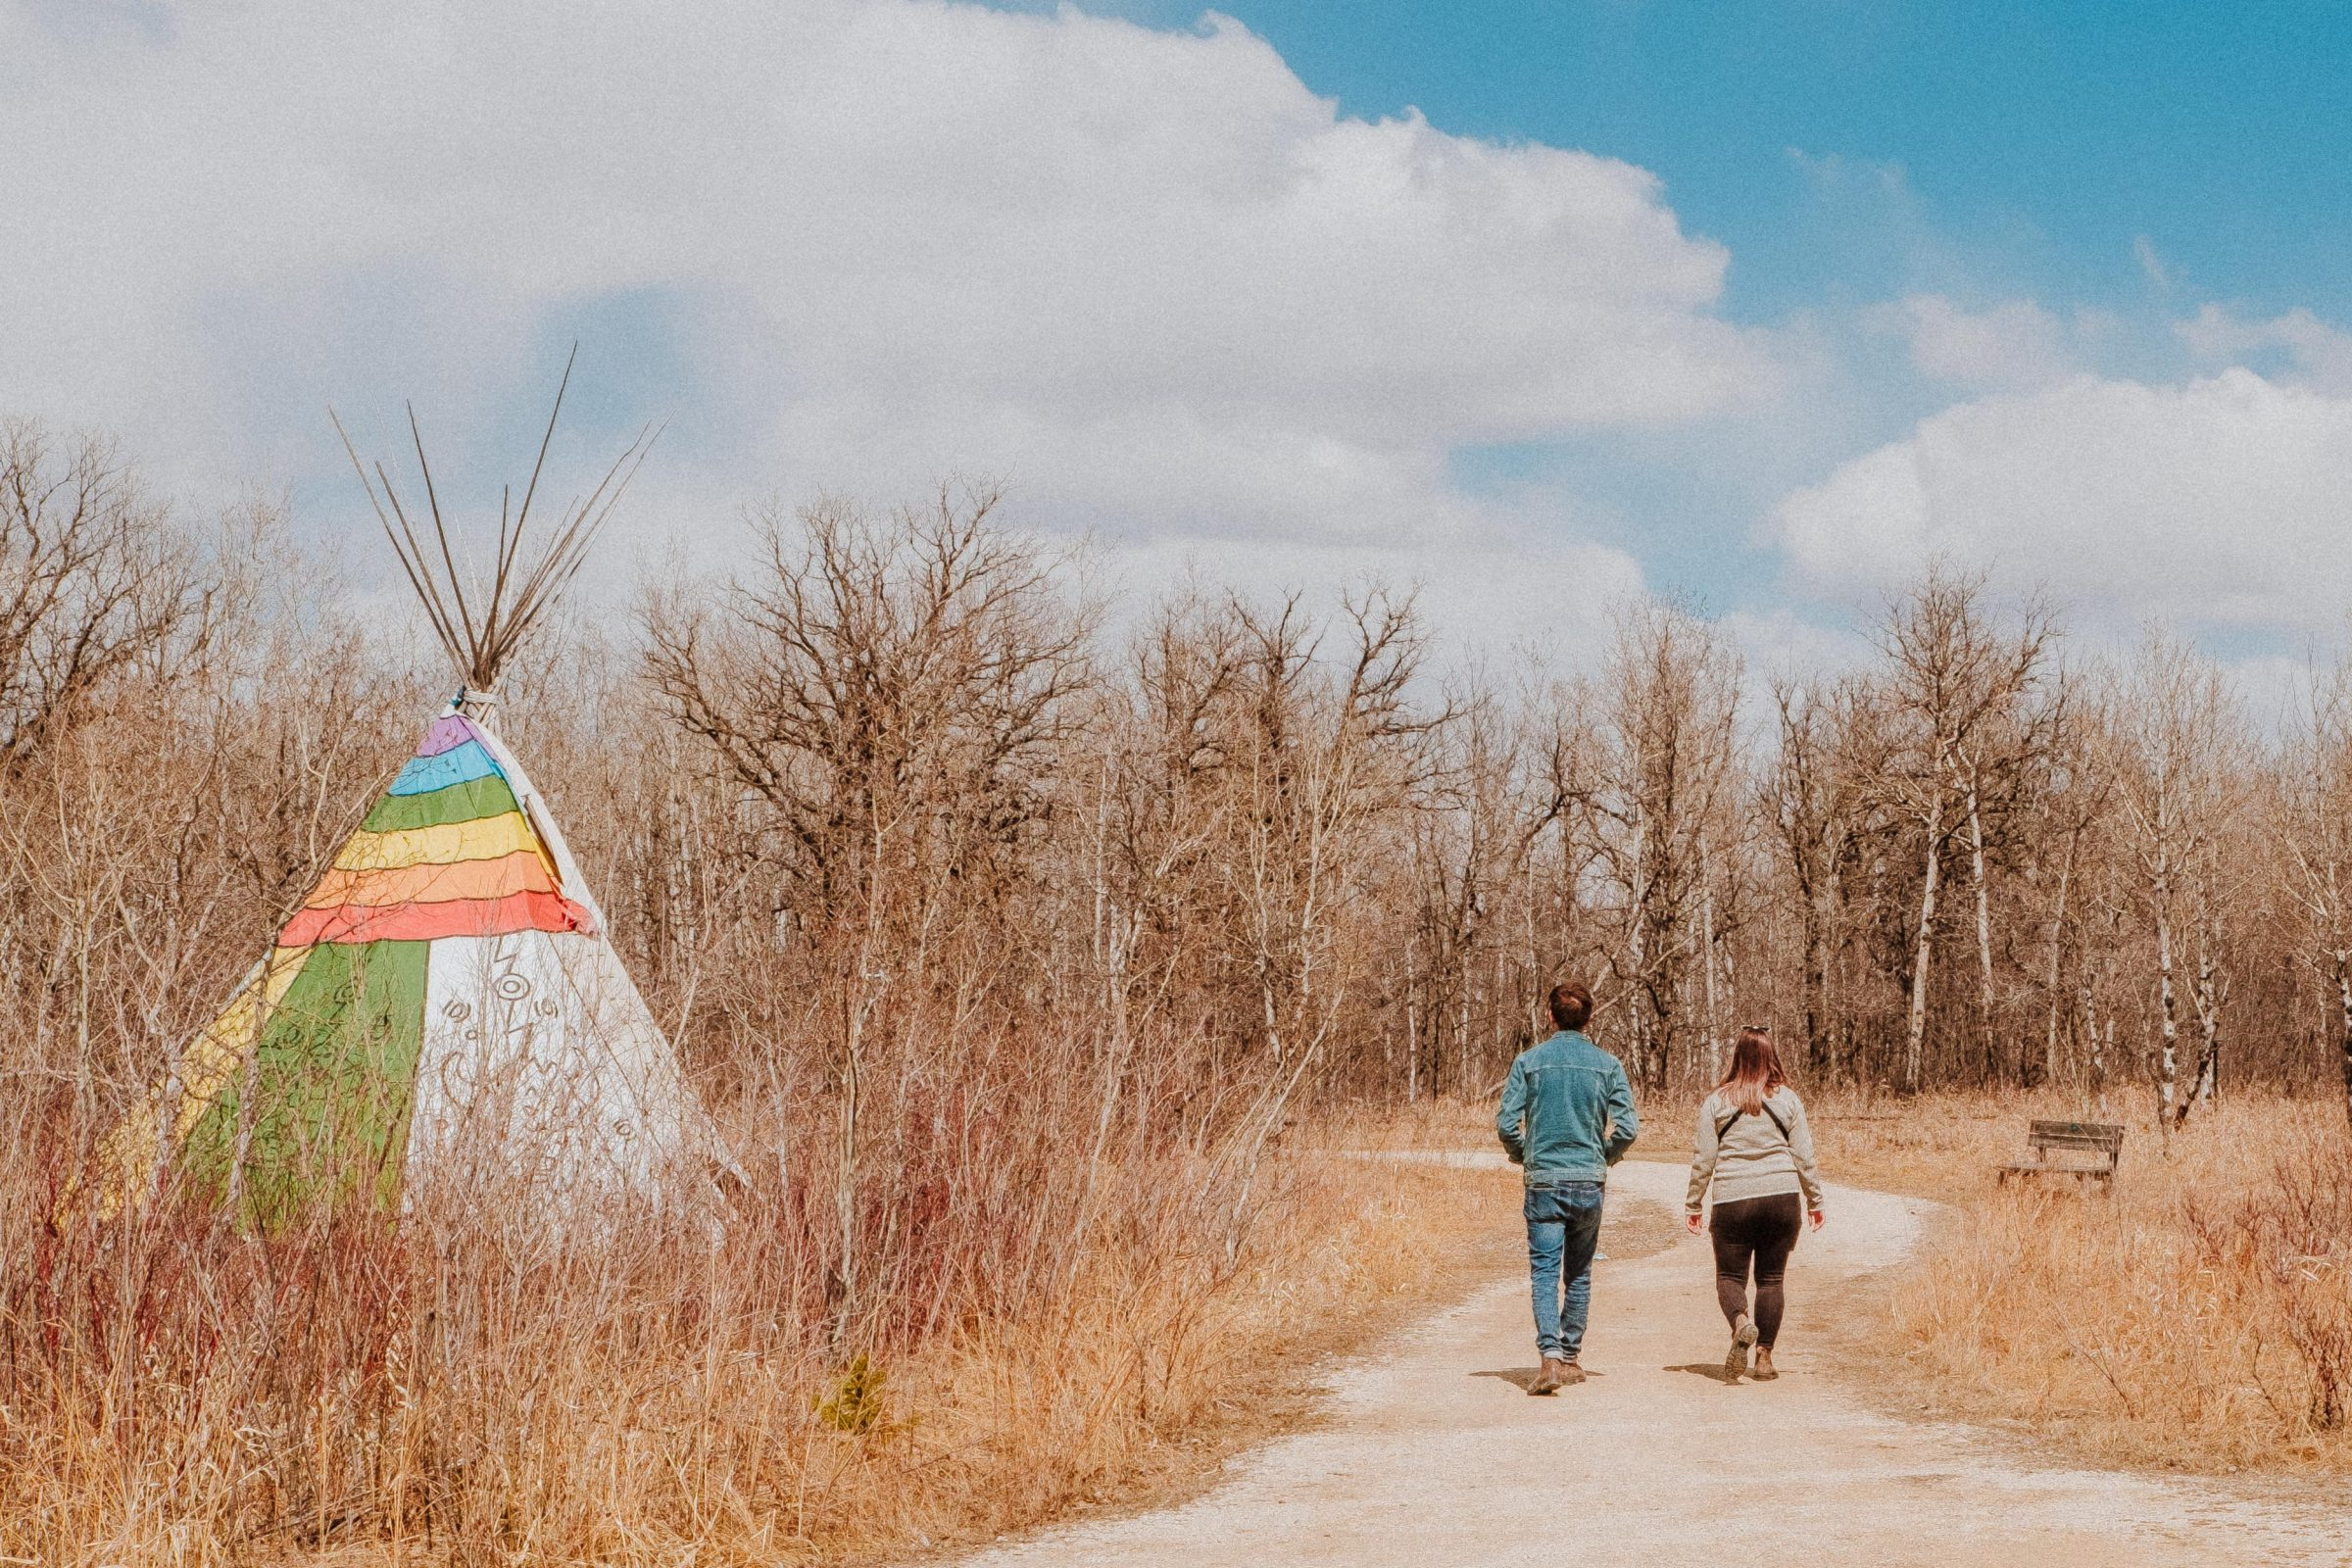 Two adults walk on the trail in spring time. A colourful painted tipi is to their left, partially hidden in tall grasses.